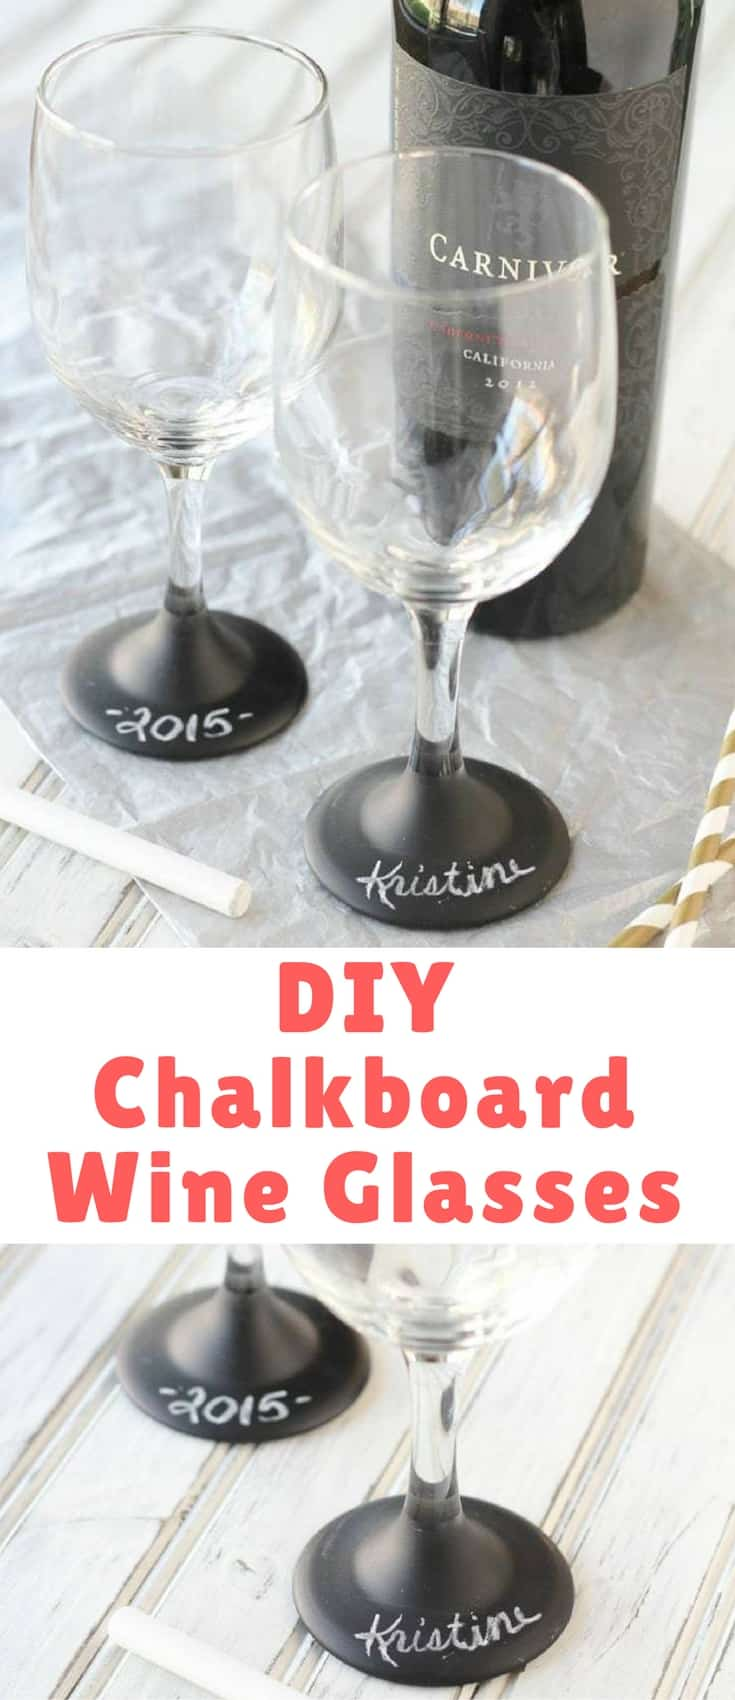 These wine glasses are probably one of my favorite little projects ever because you know me, I love to chalkboard paint anything/everything and i adore anything personalized. And they're so easy to make!